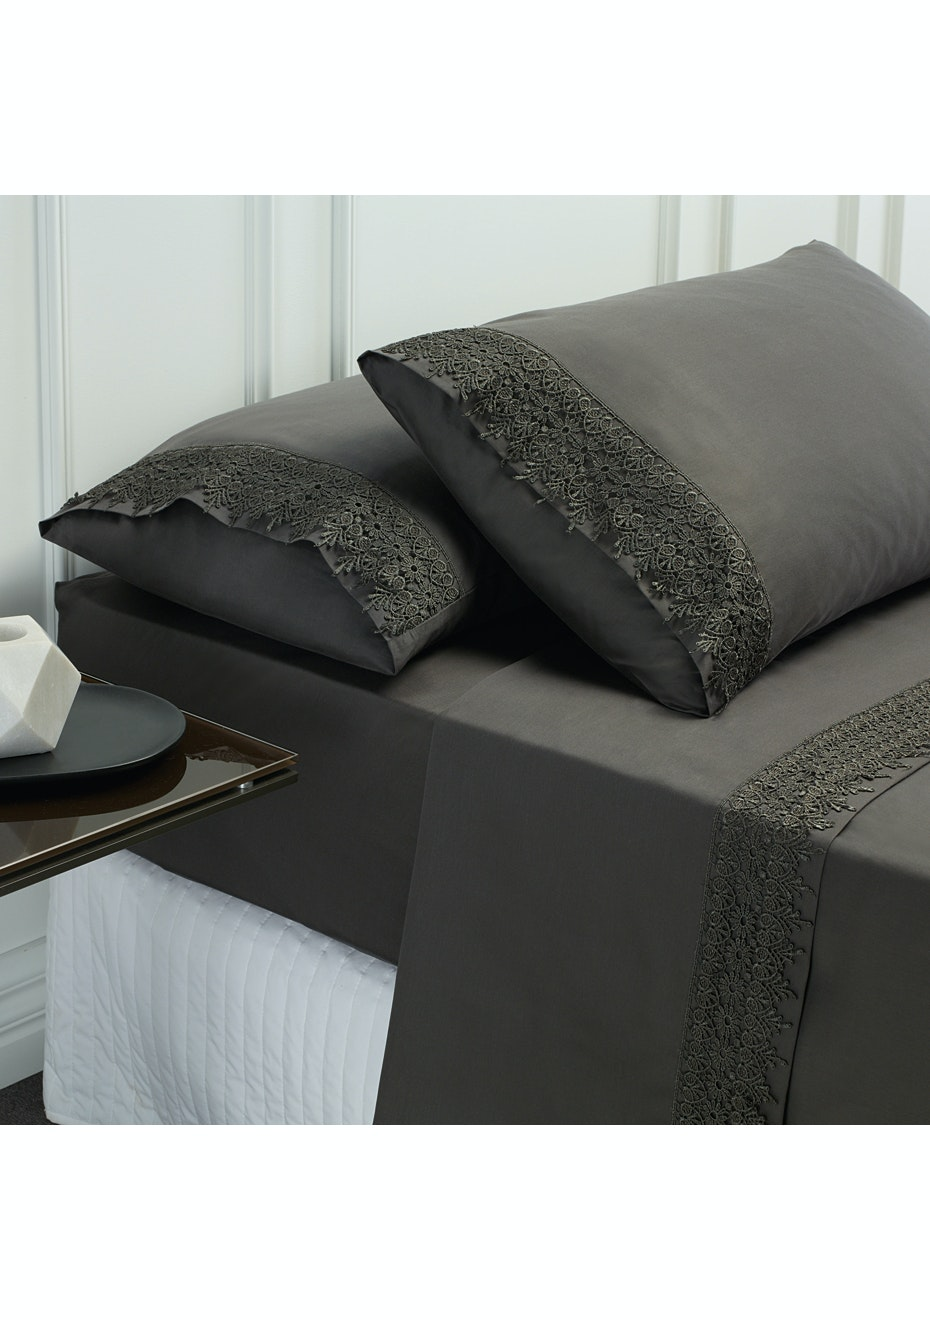 Style & Co 1000 Thread count Egyptian Cotton Hotel Collection Valencia Sheet sets King Coal